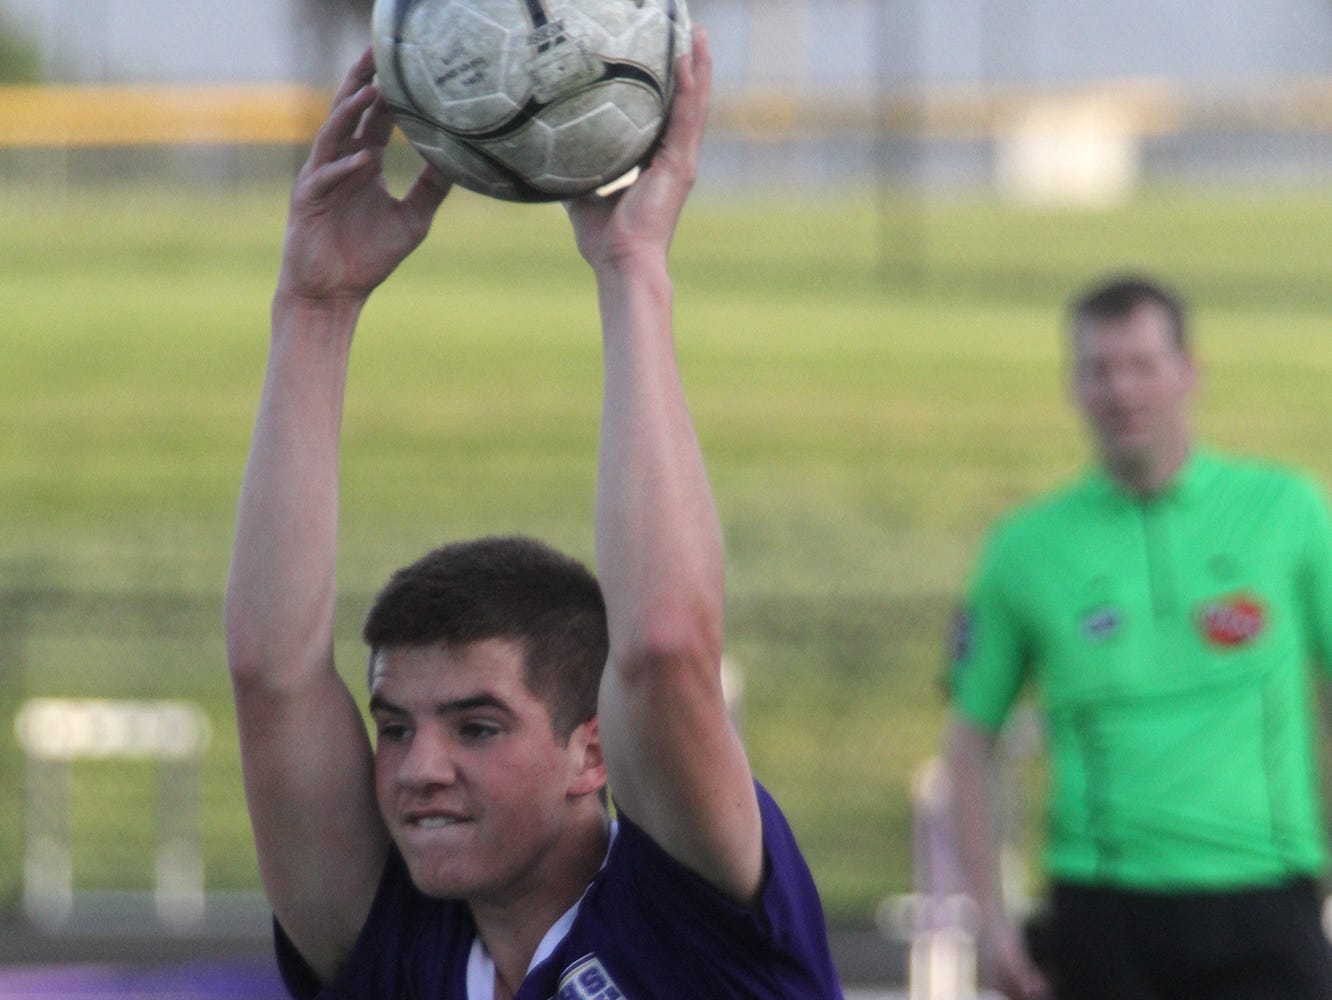 Indianola junior Brayden Beinhart inbounds the ball. Indianola beat Newton 2-0 at home in a Little Hawkeye Conference game.